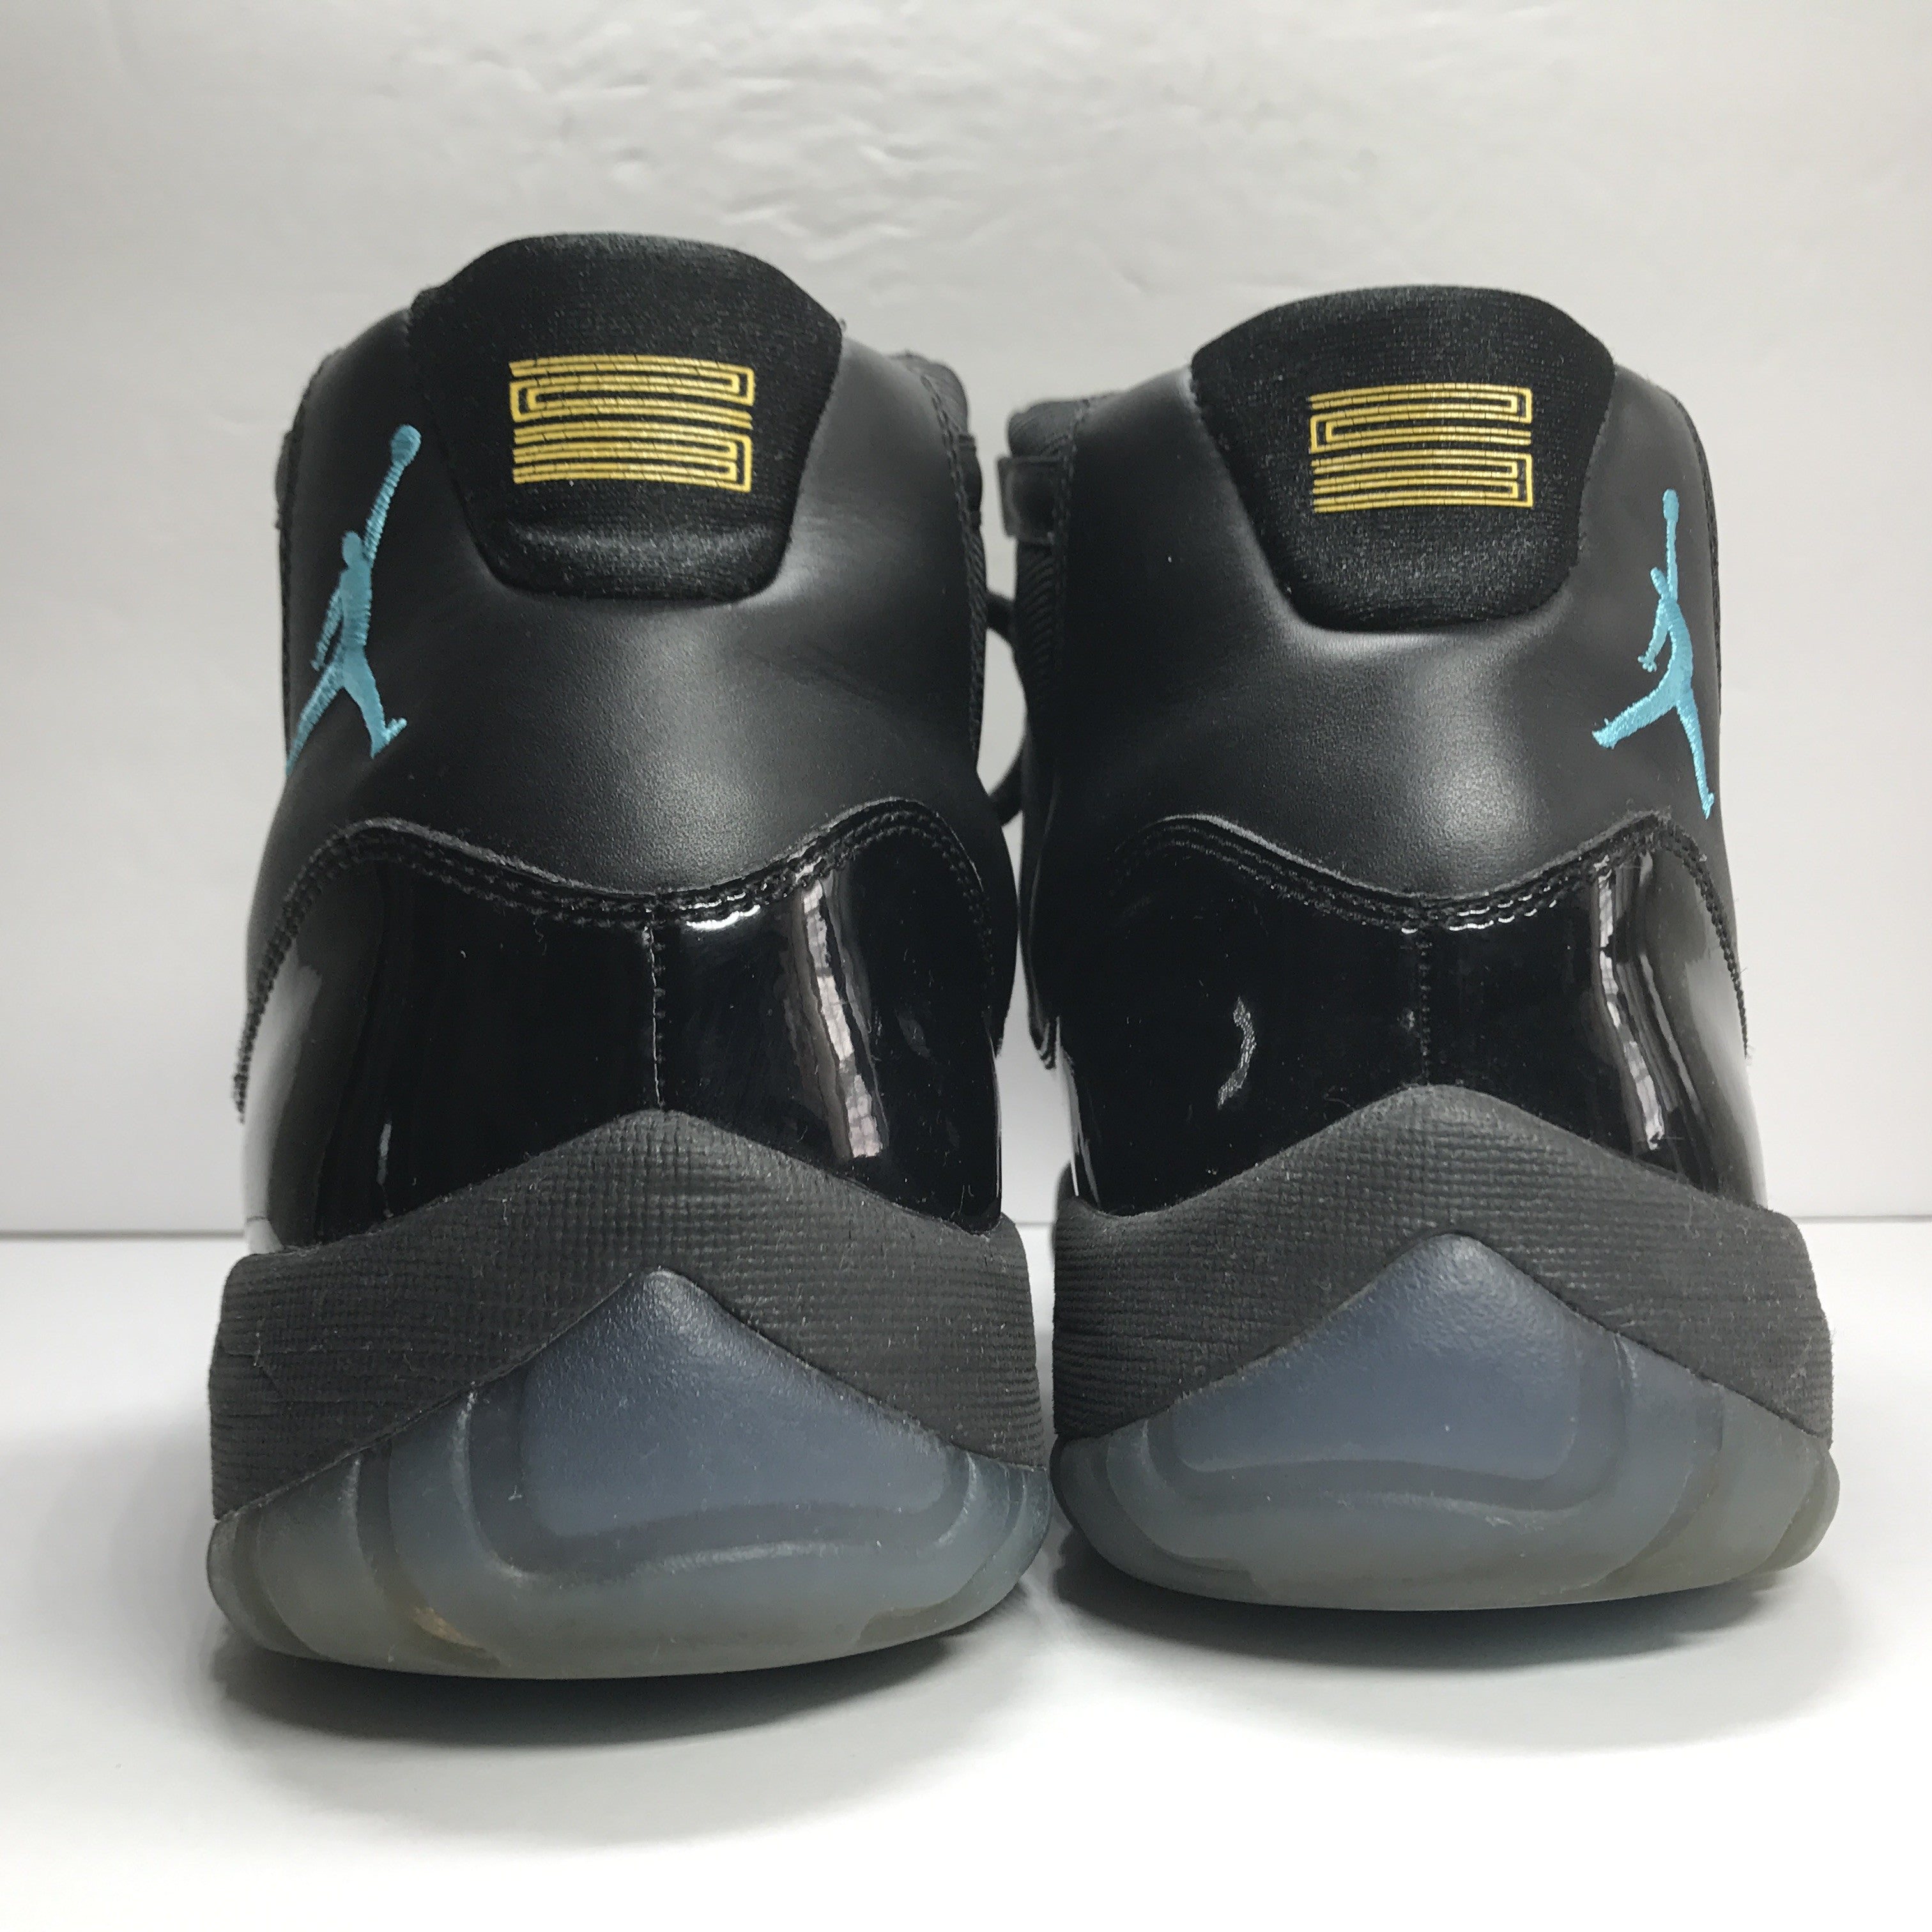 Nike Air Jordan 11 XI Retro Gamma Blue Size 14